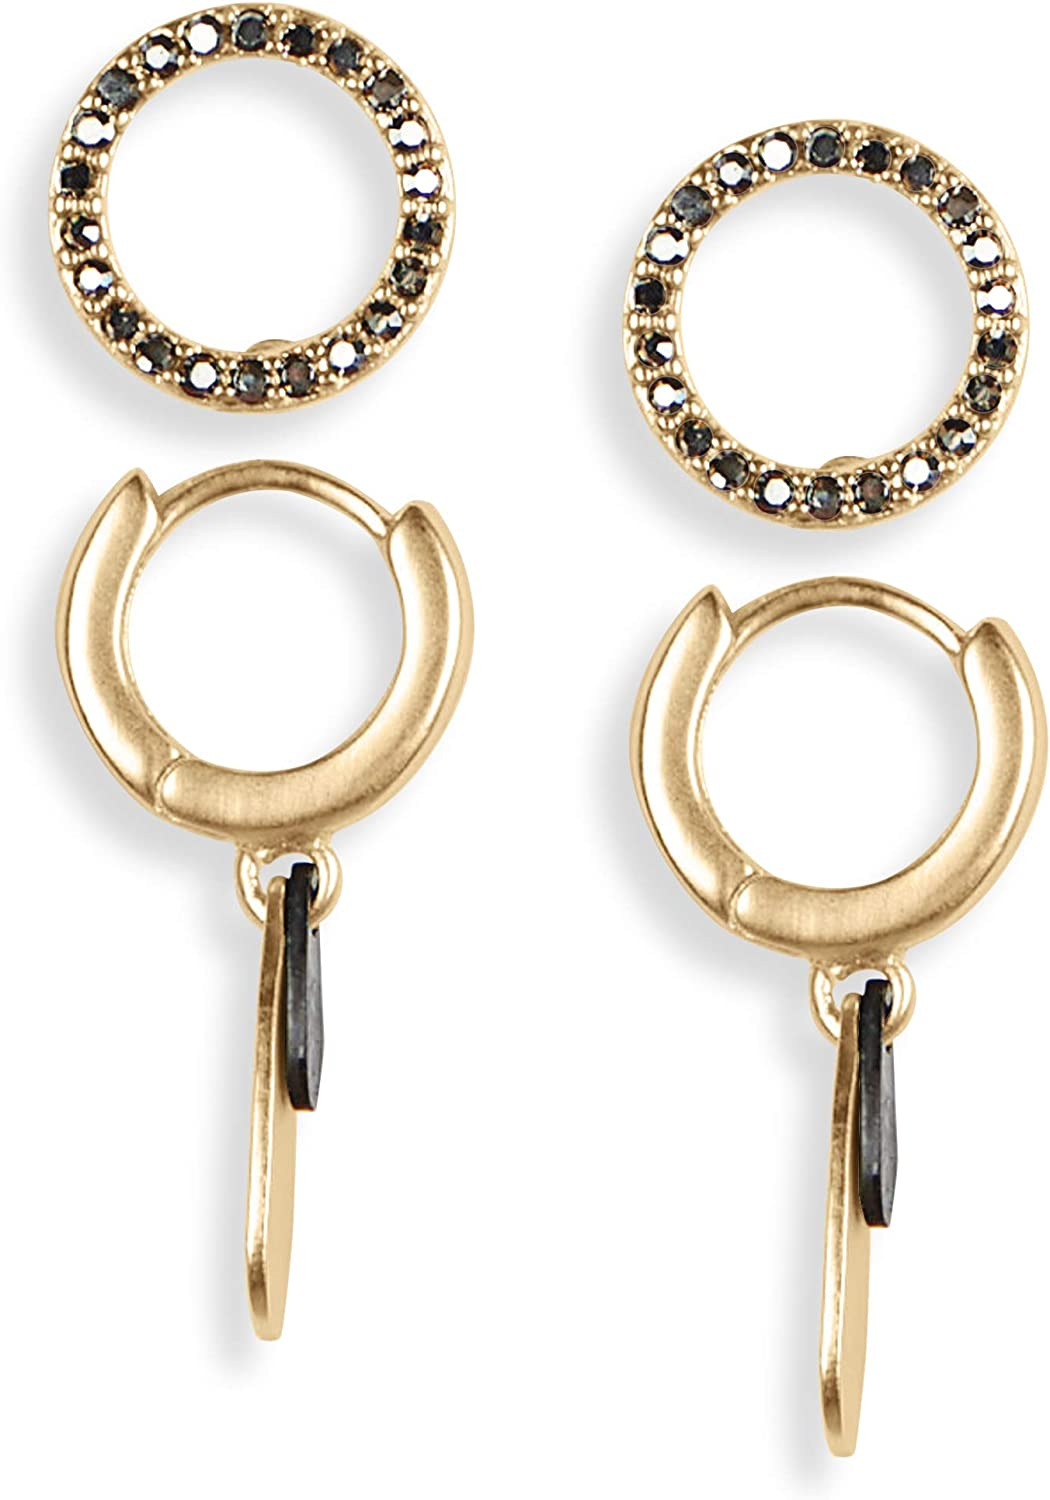 Lucky Brand Pave Circle Studs and Paddle Hoop Earring Set, Two Tone, One Size (JWEL4895)